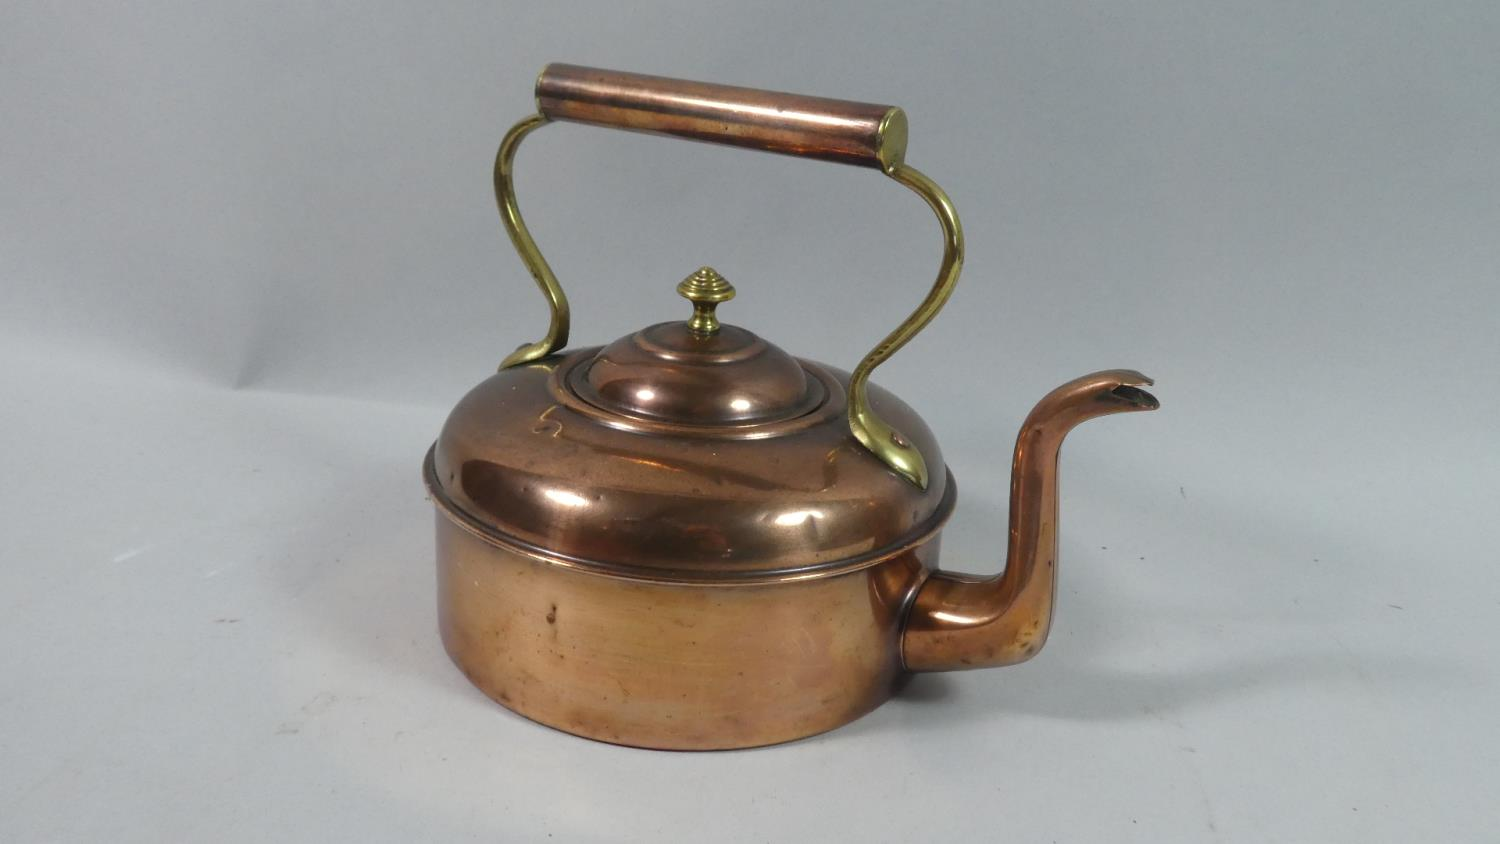 Lot 46 - A Circular Copper and Brass Kettle, Stamped 3 to Base, 16cm Diameter